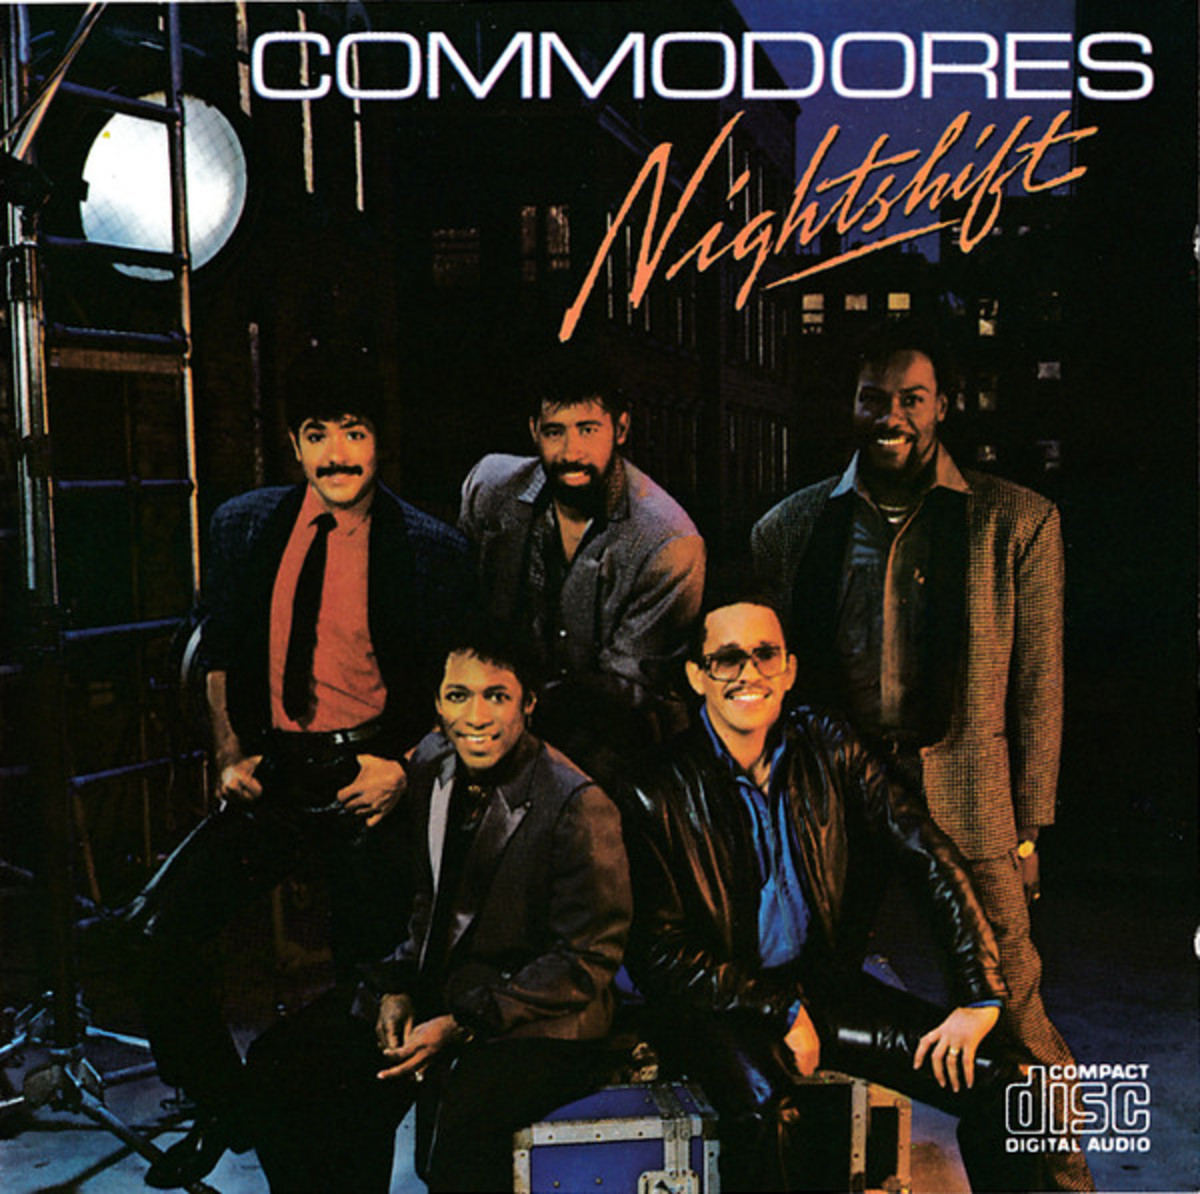 The Commodores did amazing job without Lionel Richie on this album. Unfortunately they weren't able to endure with the albums that followed.